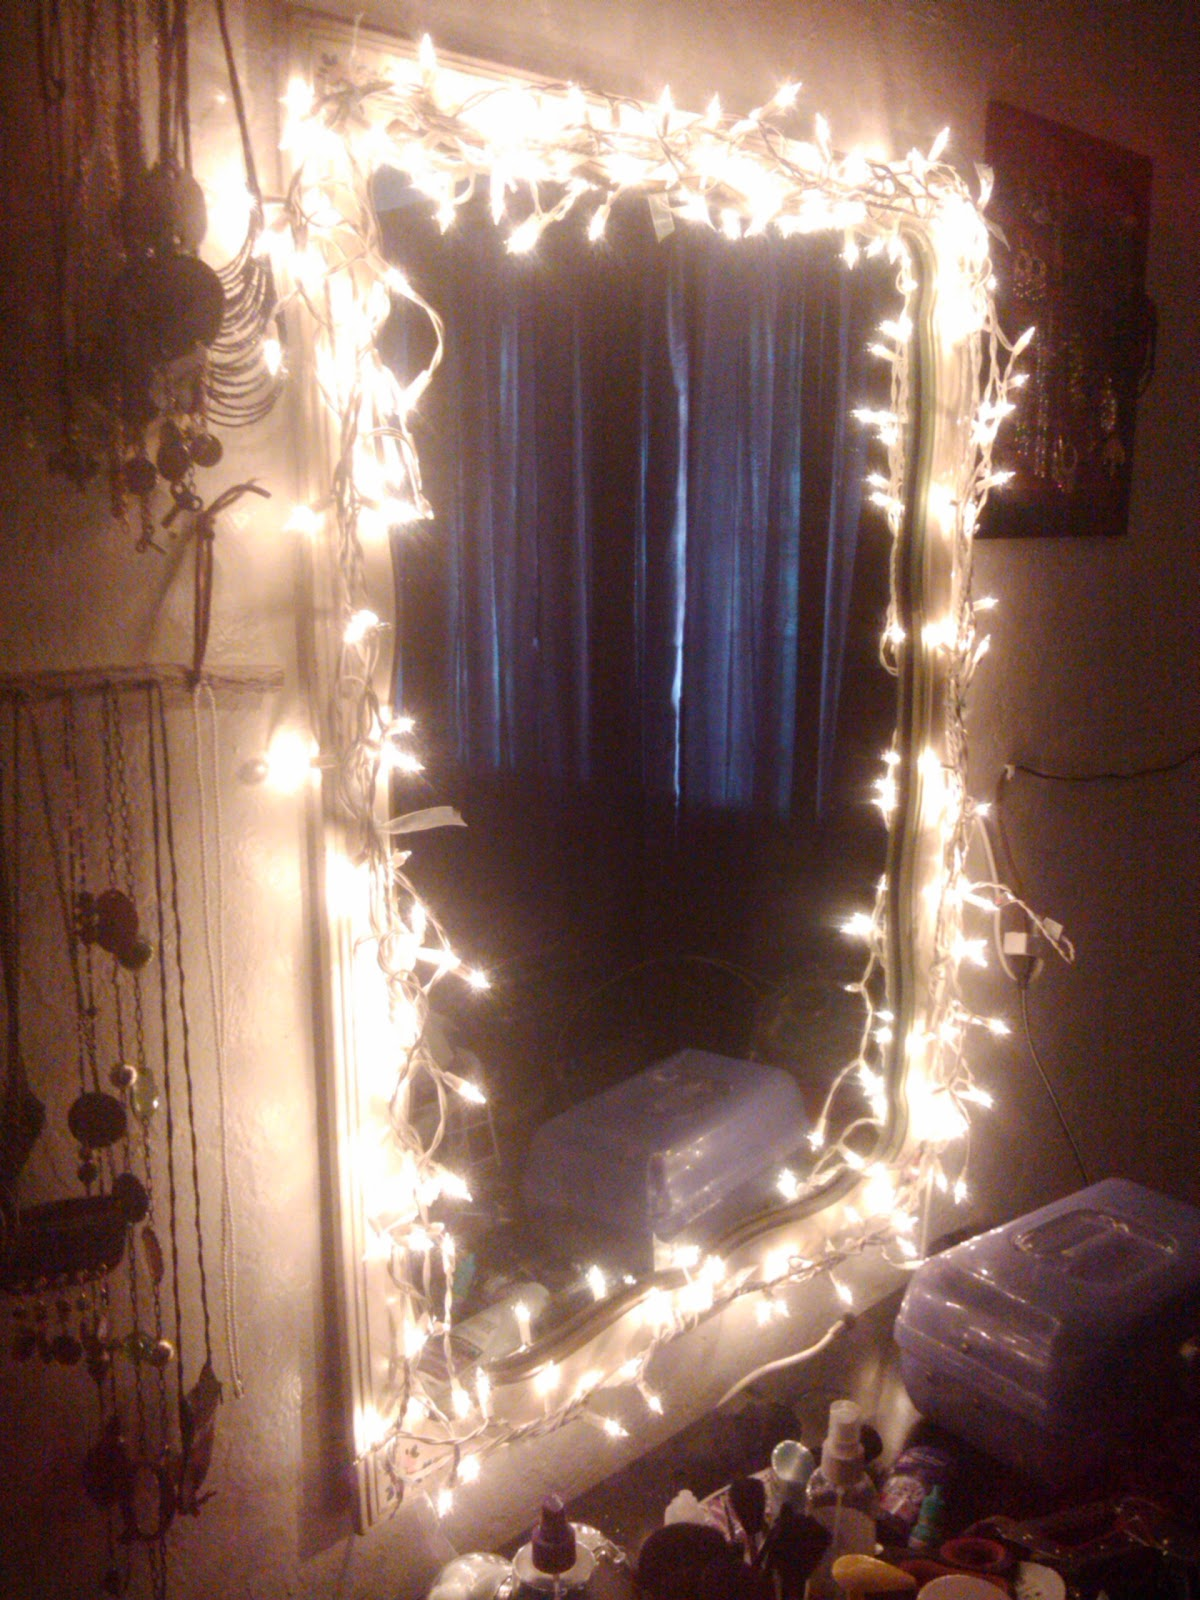 Vanity Lights In Mirror : Easy diy light up vanity mirror.